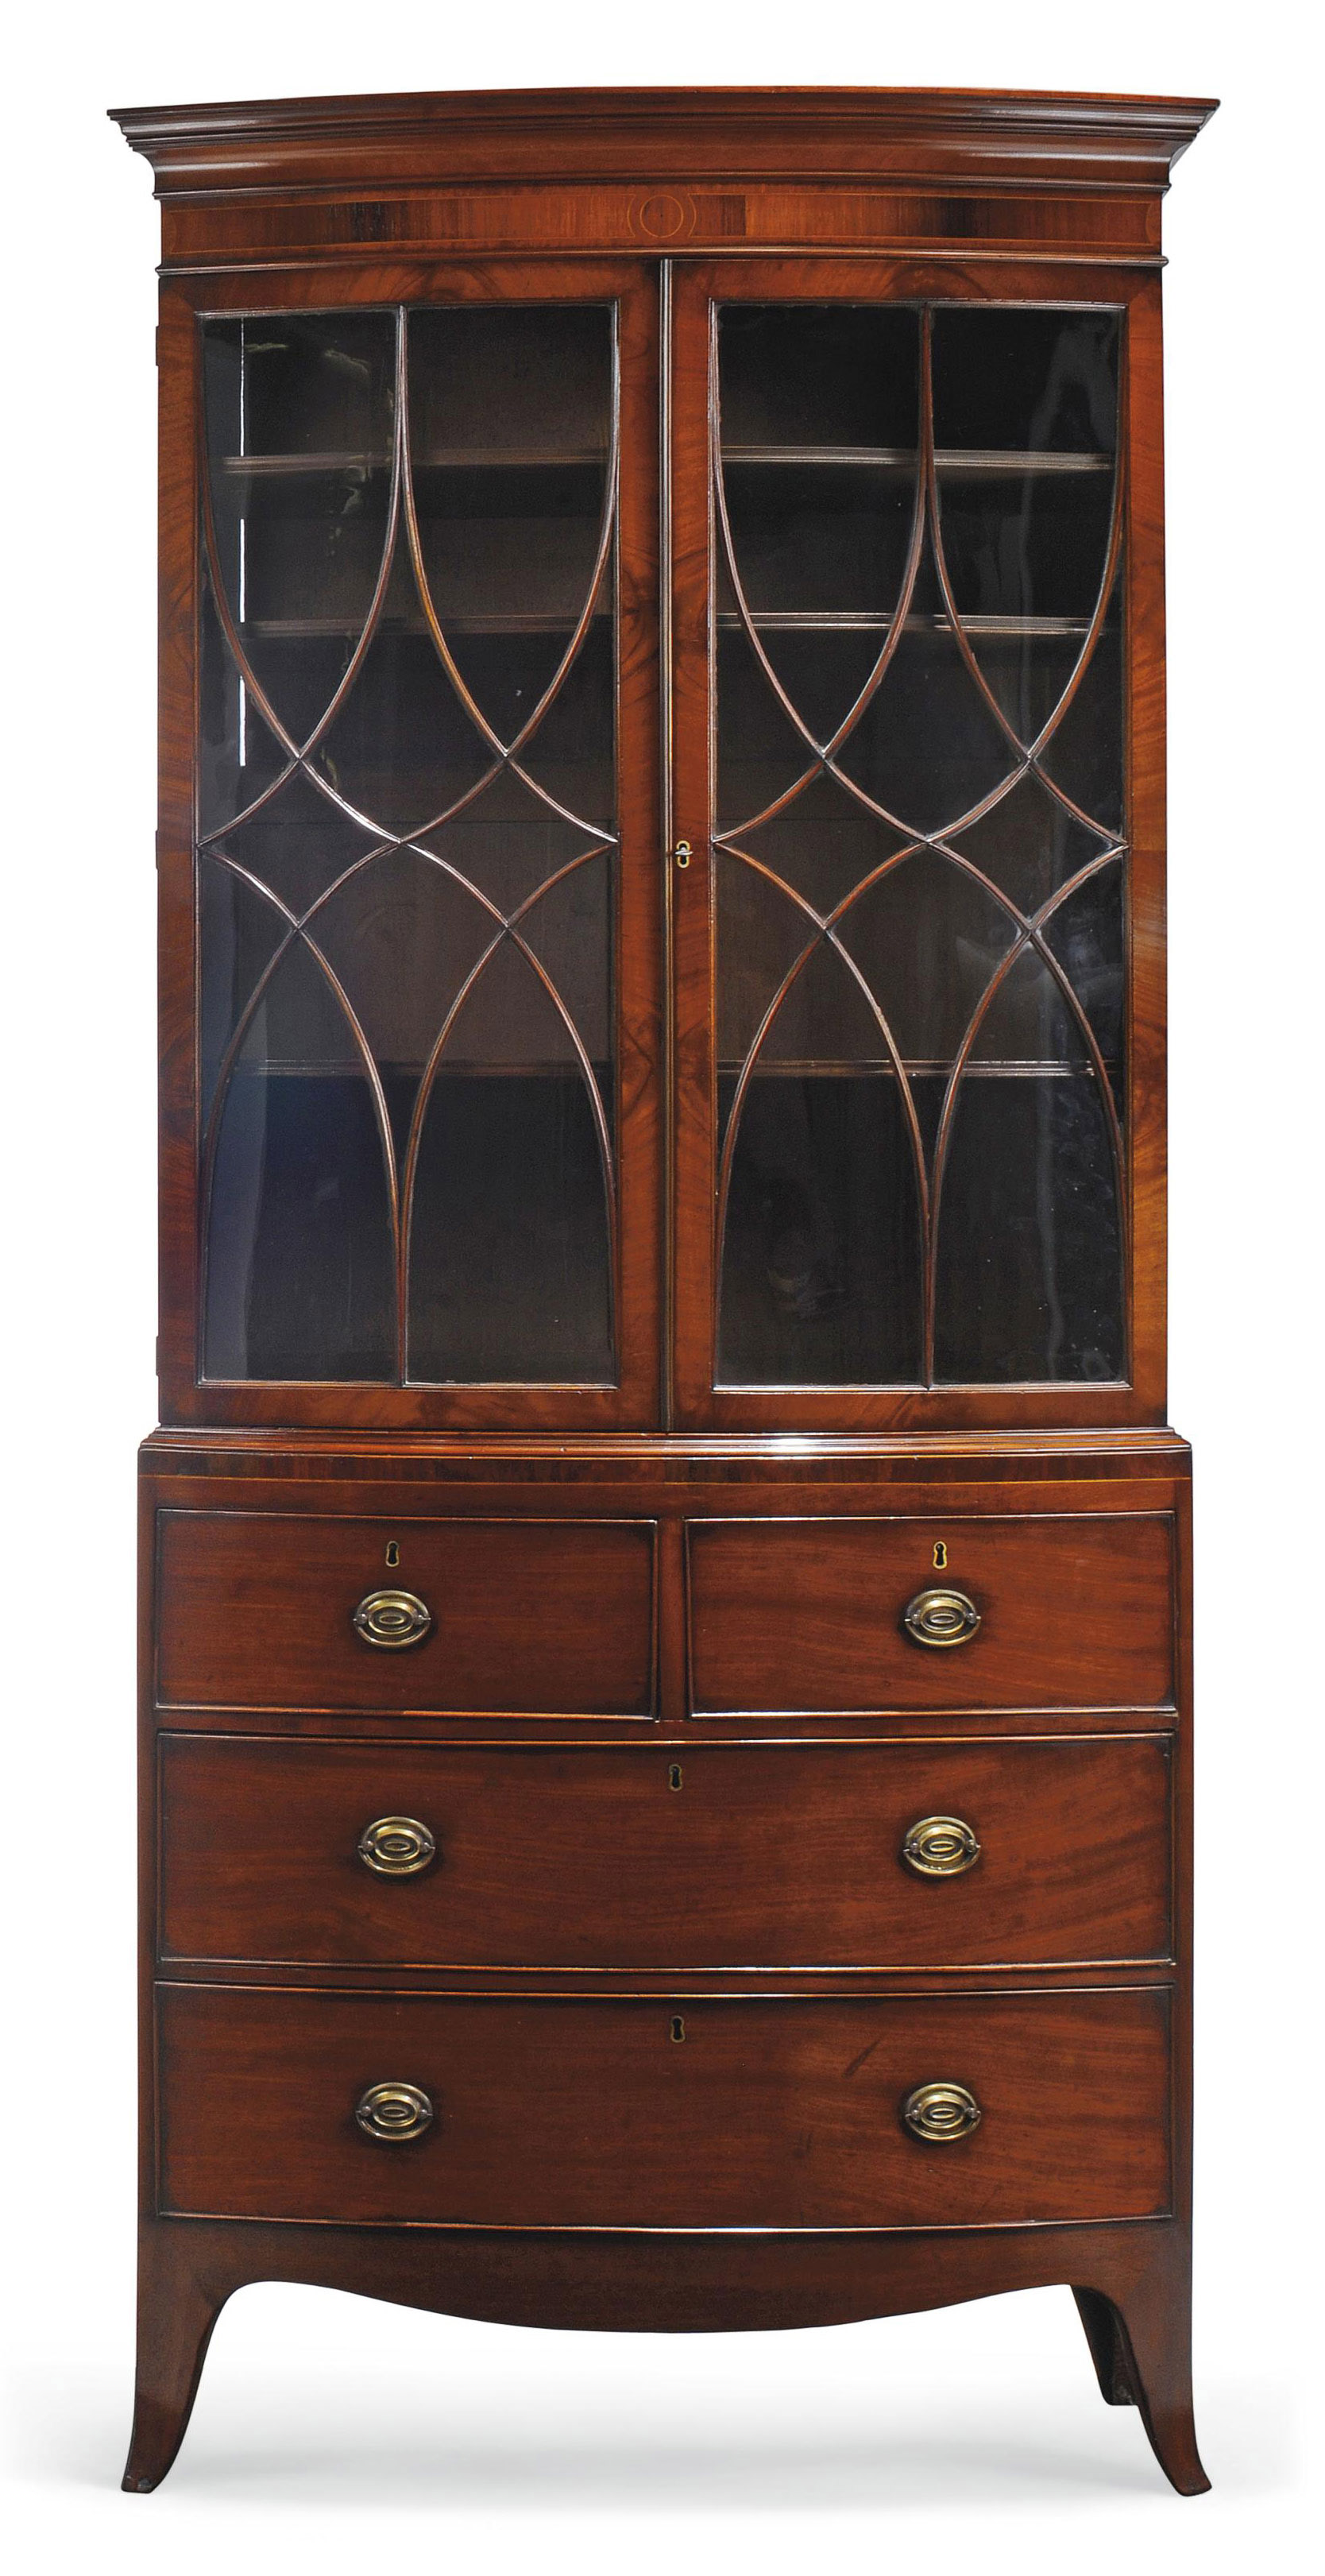 A REGENCY MAHOGANY AND ROSEWOOD CROSSBANDED BOWFRONT CABINET ON CHEST